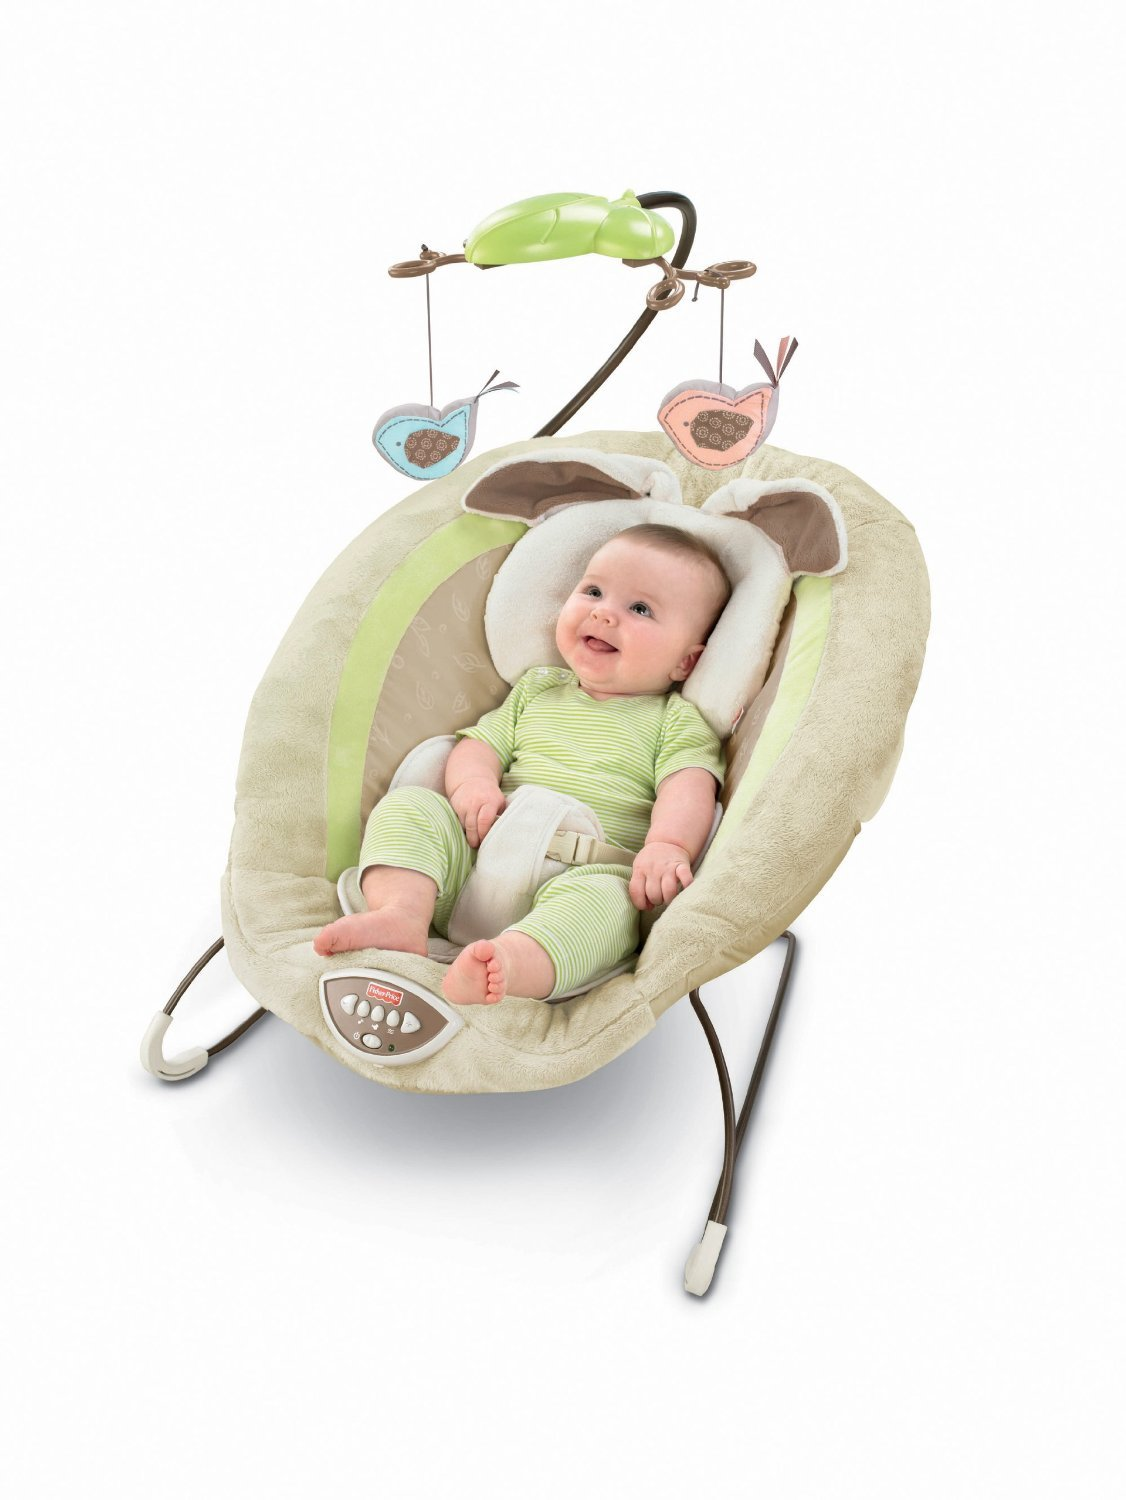 baby chair that vibrates electric execution footage top 5 and best rockers bouncers